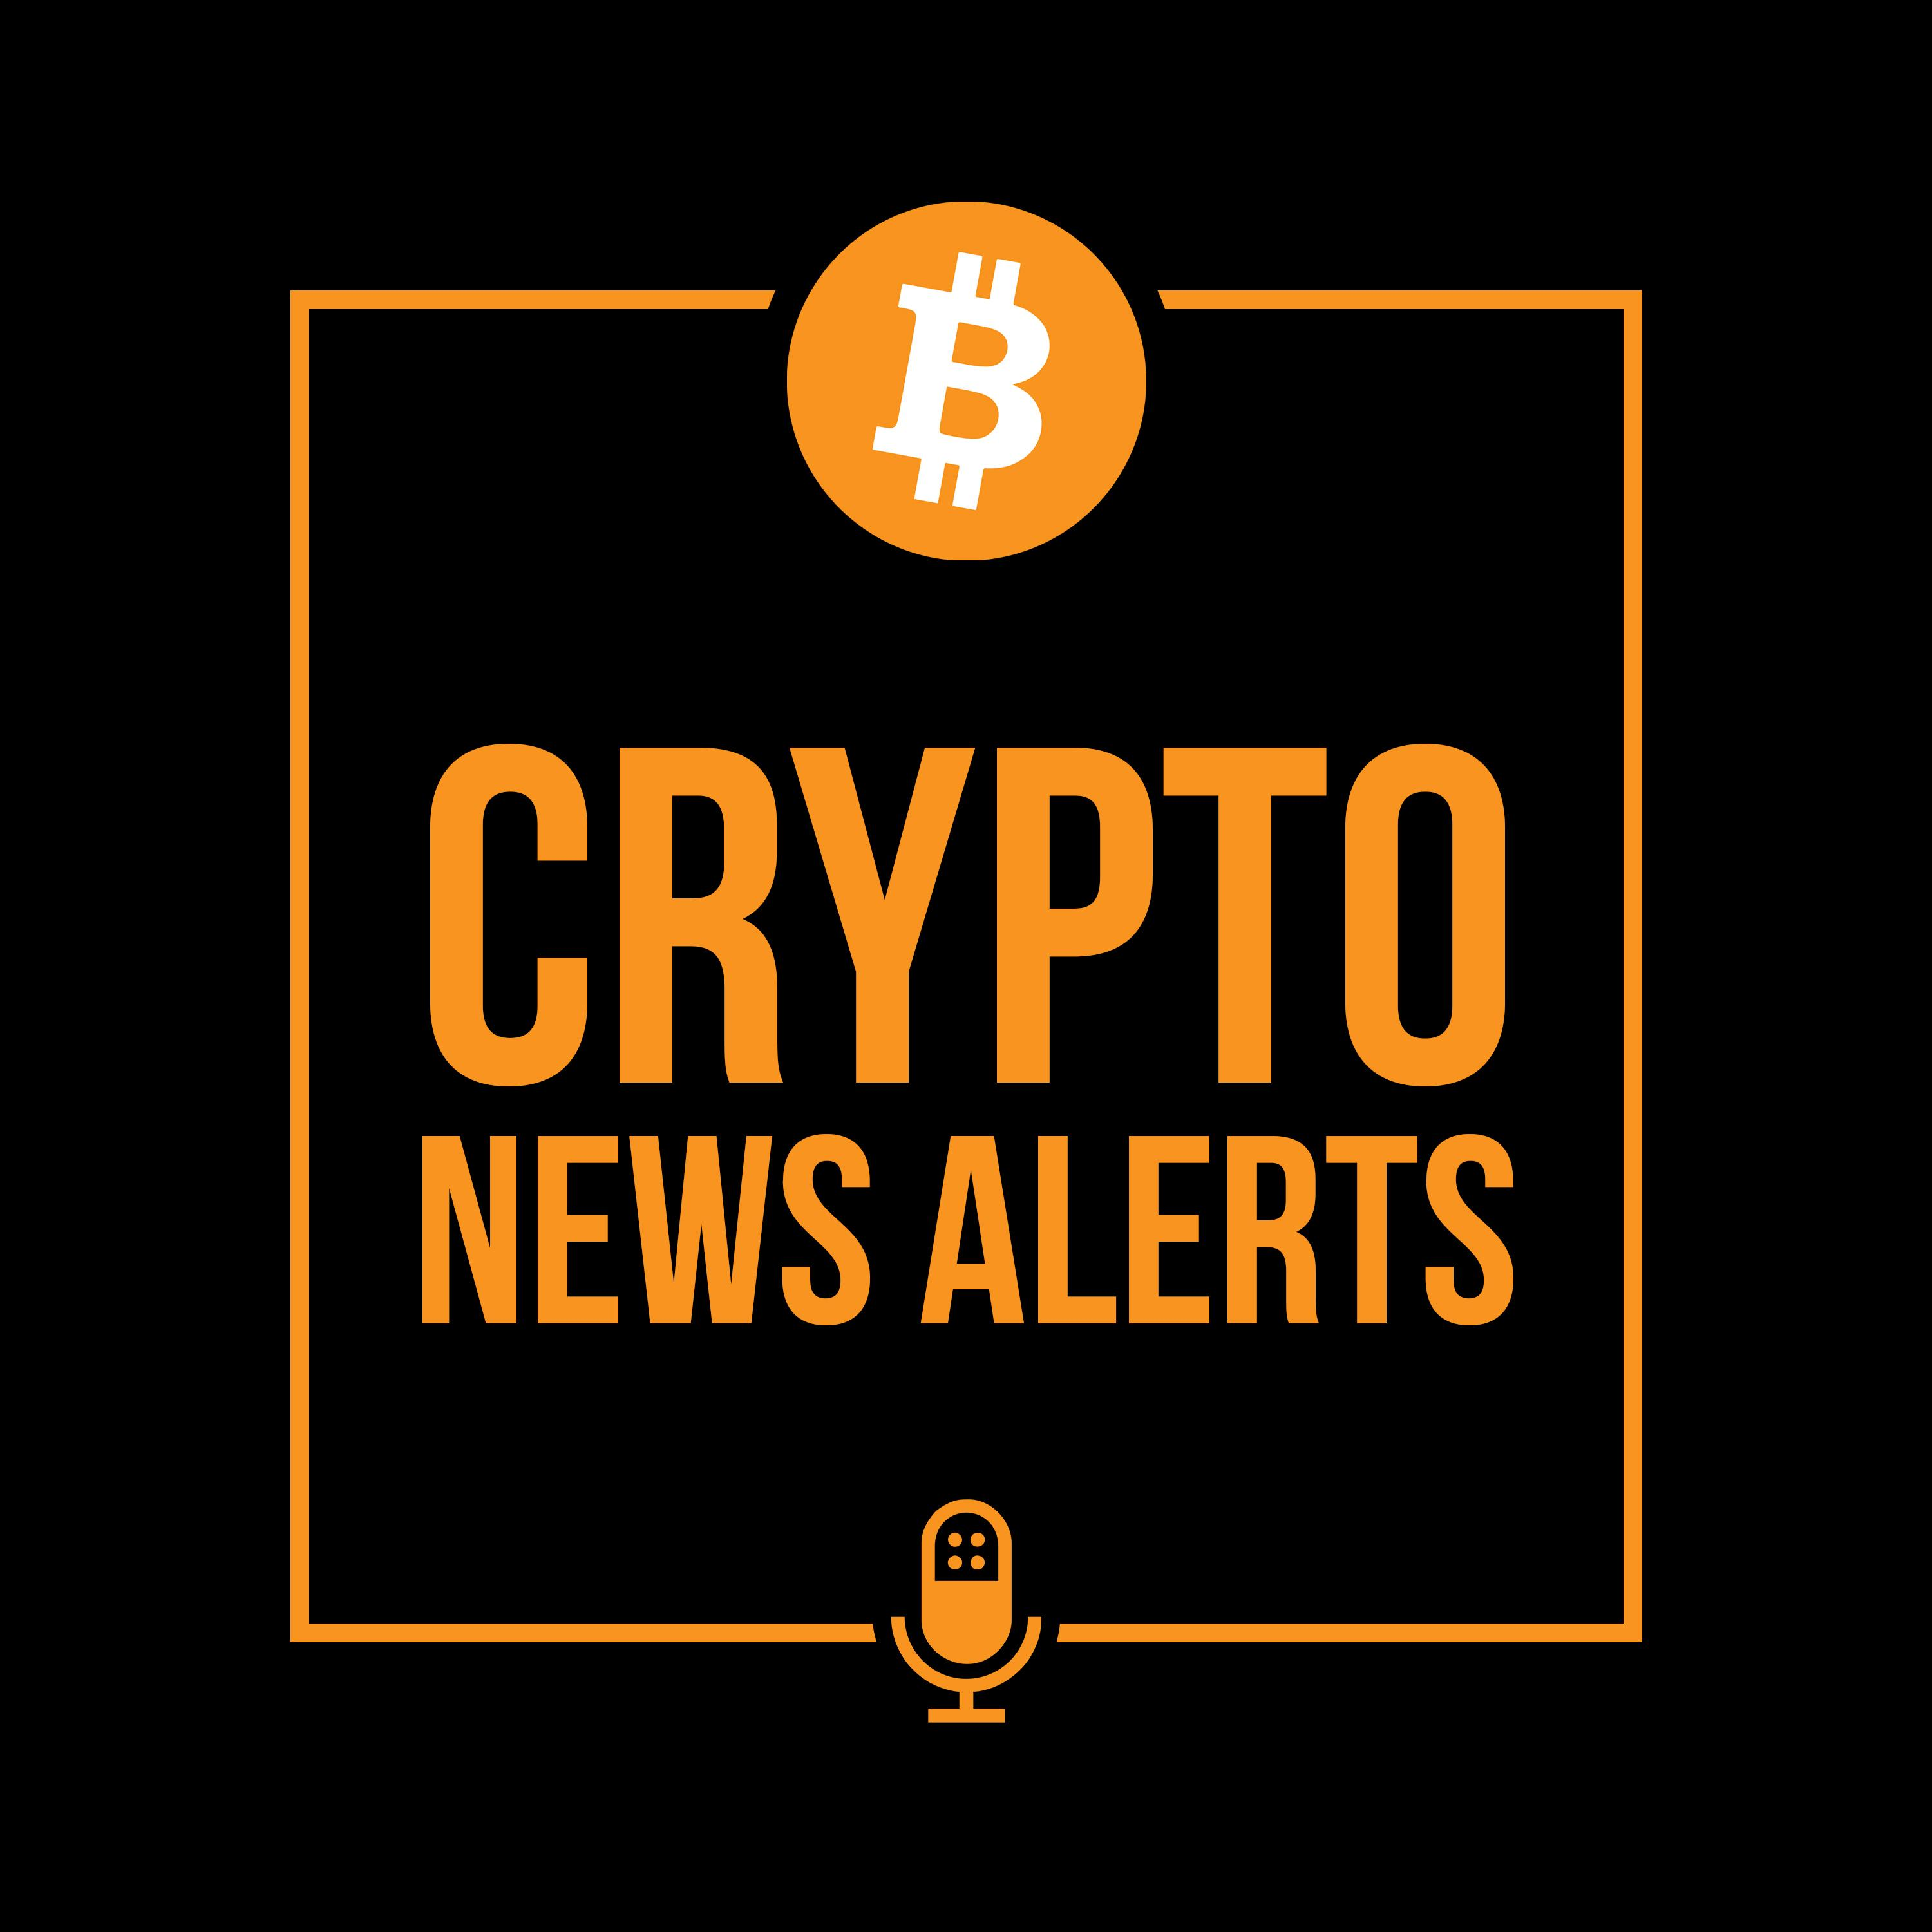 708: I EXPECT BITCOIN TO PASS $1-2 MILLION EASILY BY THIS DATE, PREDICTS BTC VETERAN BOBBY LEE!!!!